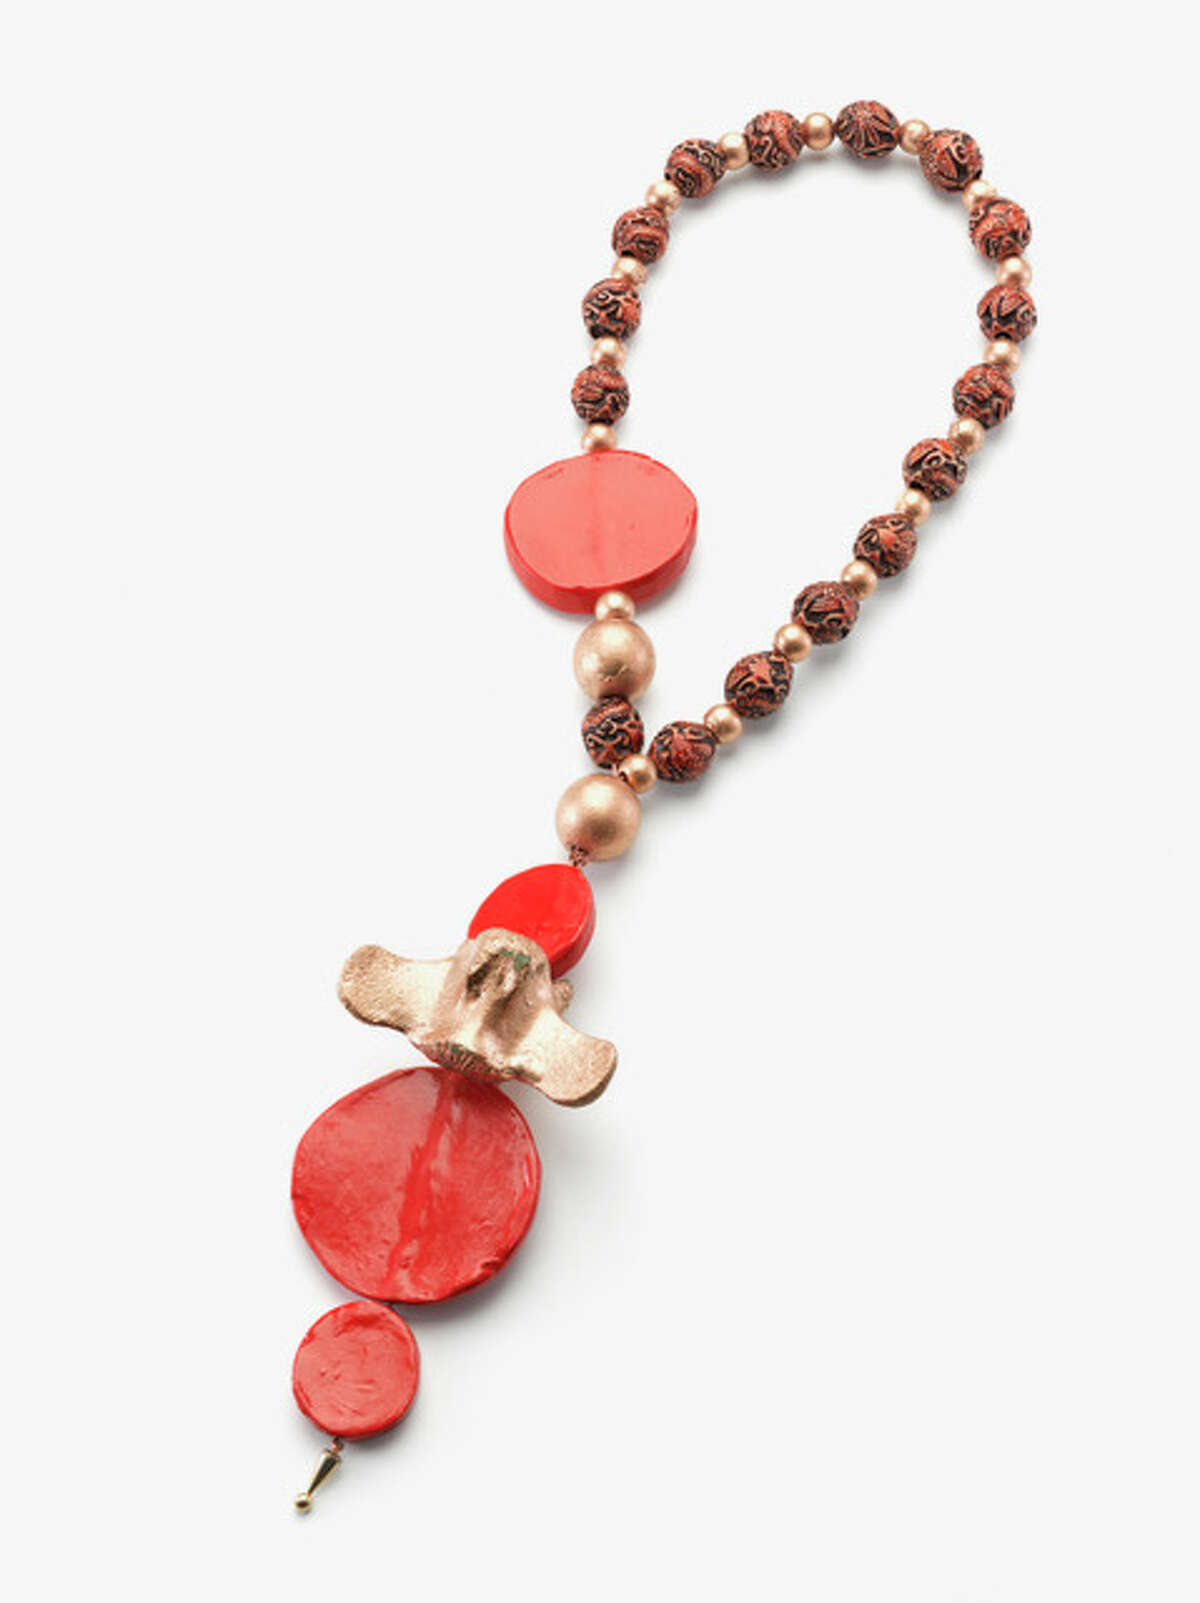 """This """"Sculpture in the form of a Necklace"""" combines oxtail bones with elements of Glyphs which Riley fabricated in ceramics during her Oxbow artist residency in Michigan a few years ago."""